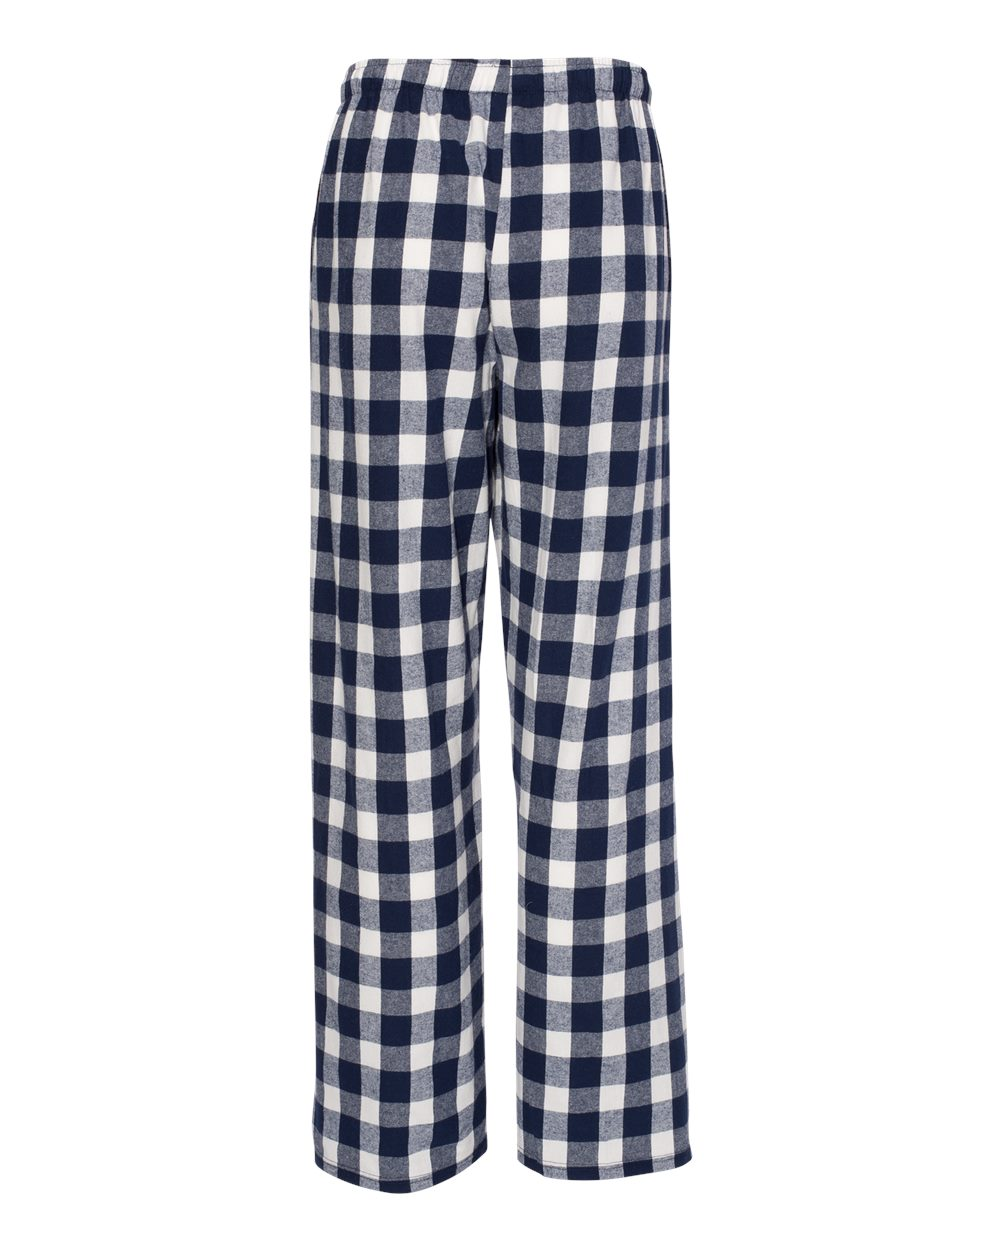 Boxercraft-Unisex-Flannel-Pants-With-Pockets-Pajama-Pants-F20-up-to-2XL thumbnail 28